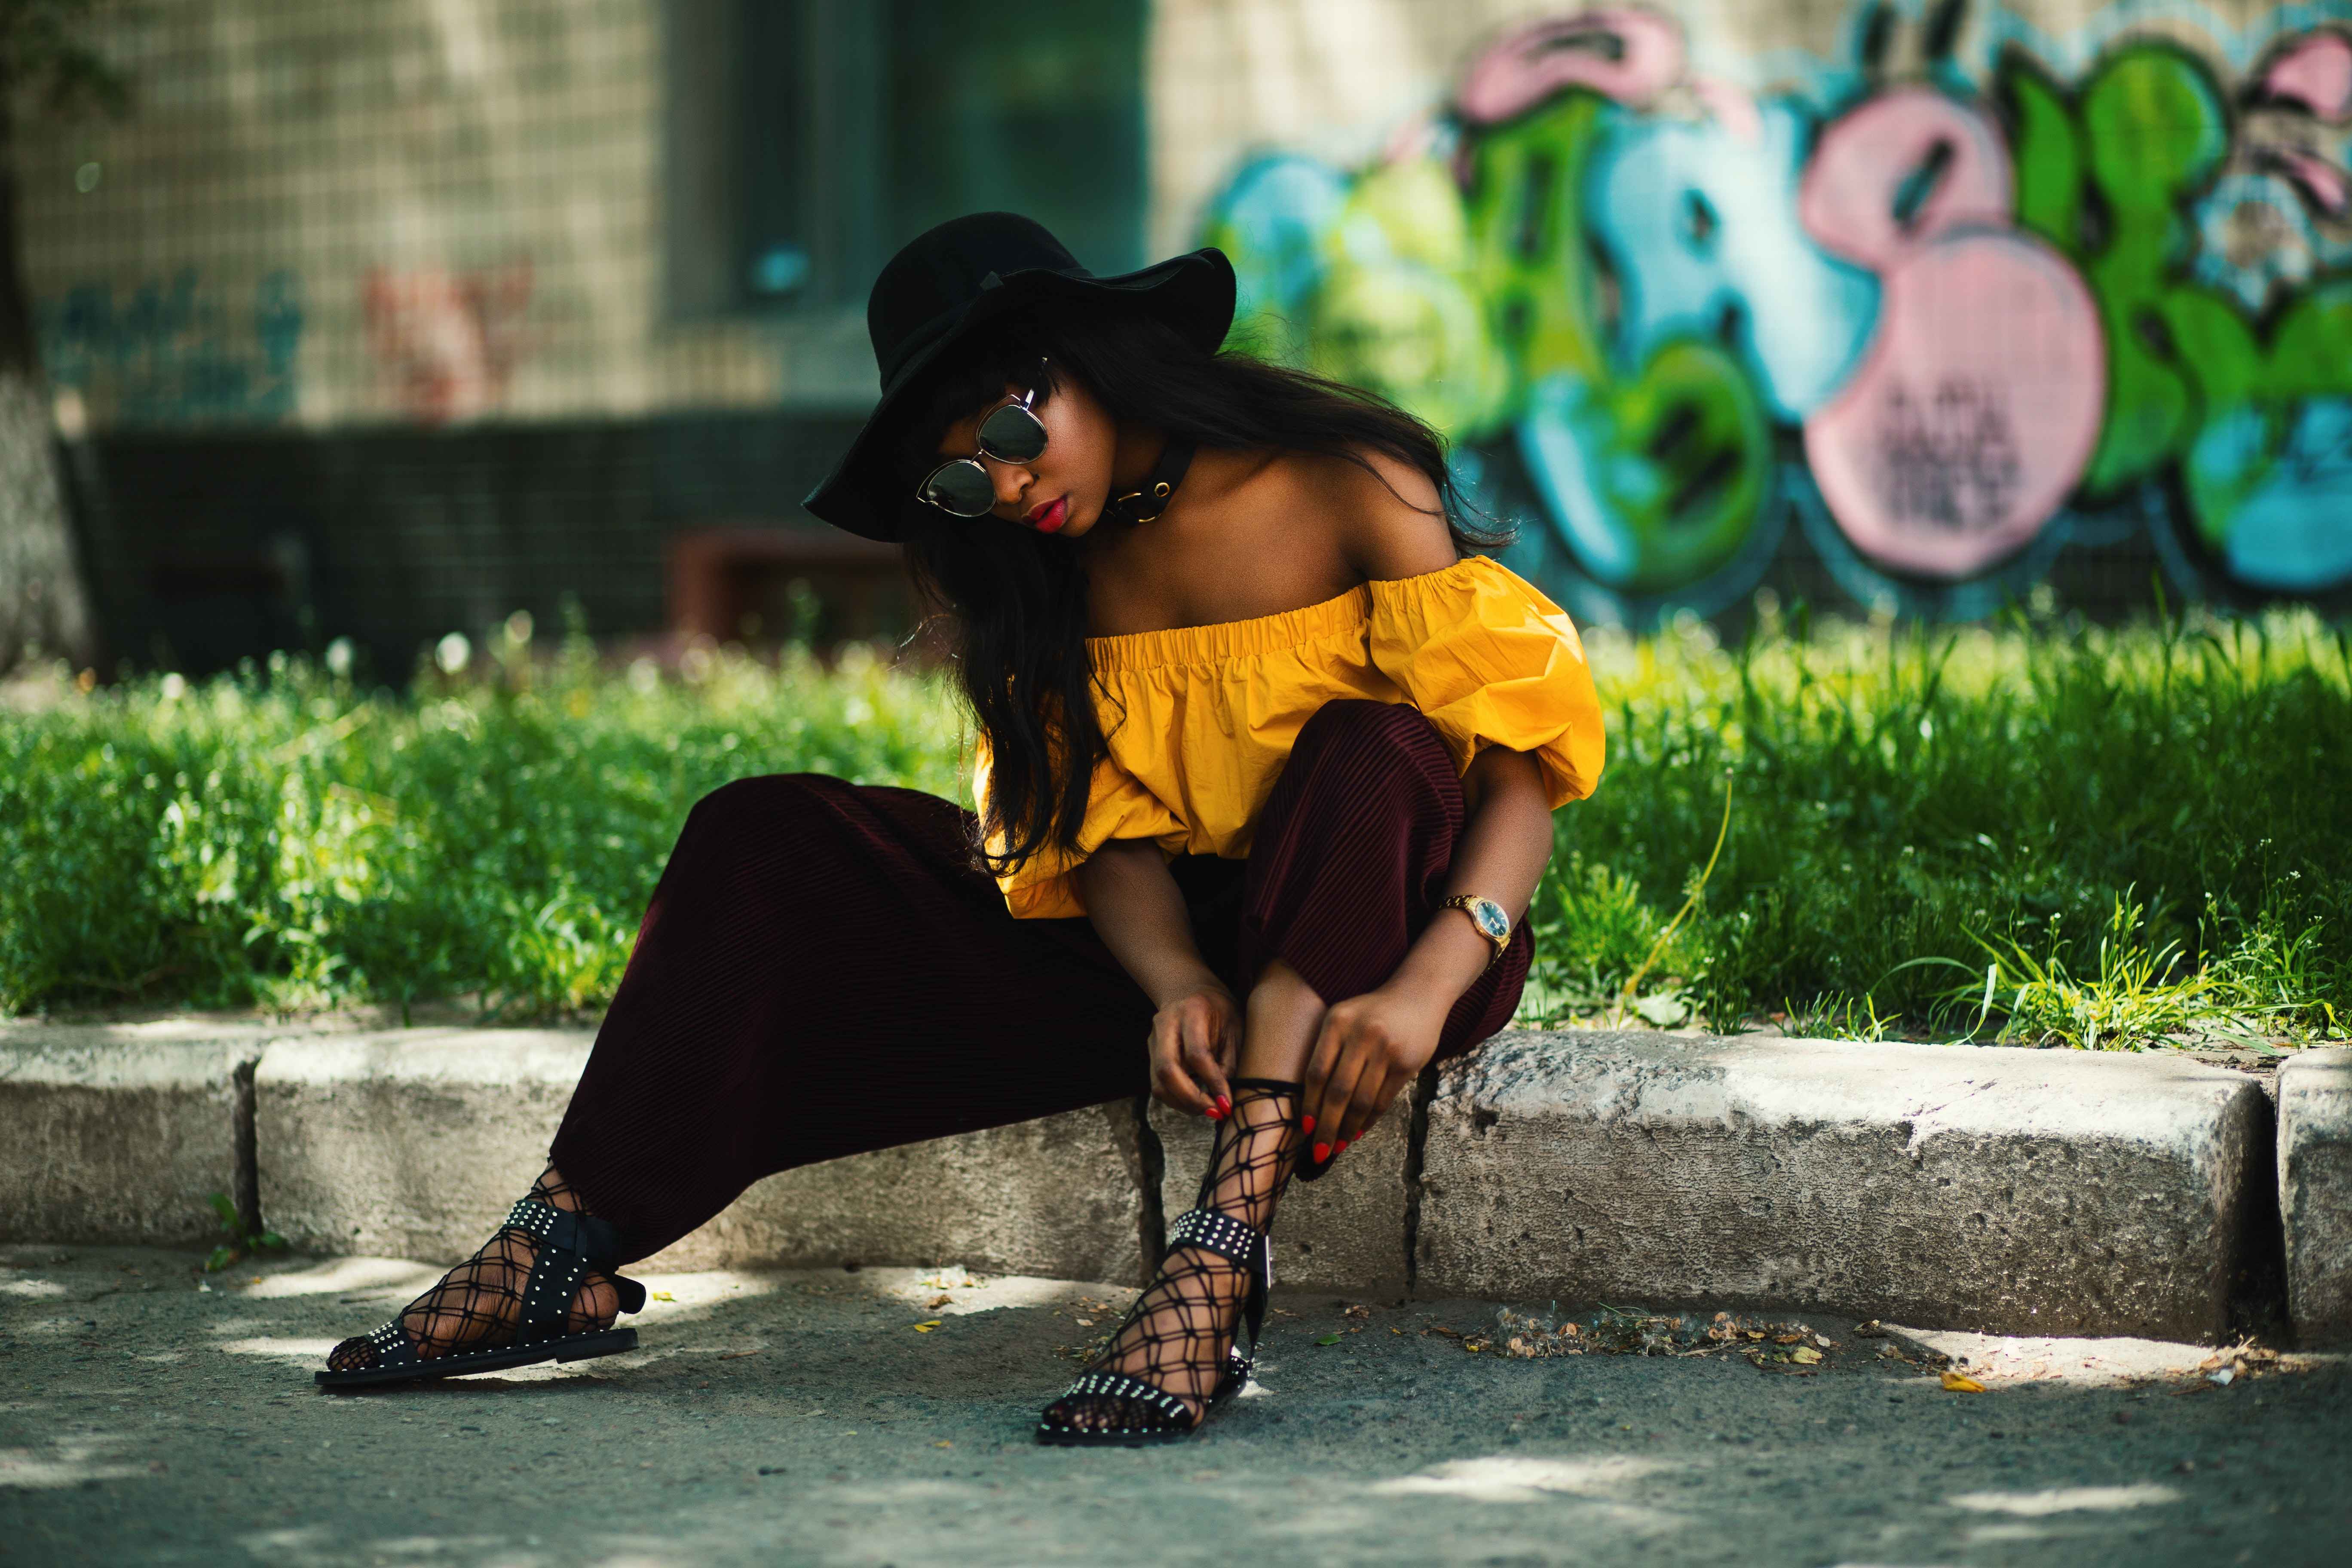 Woman wearing yellow off-shoulder top and black pants sitting on sidewalk fixing lace sandals photo